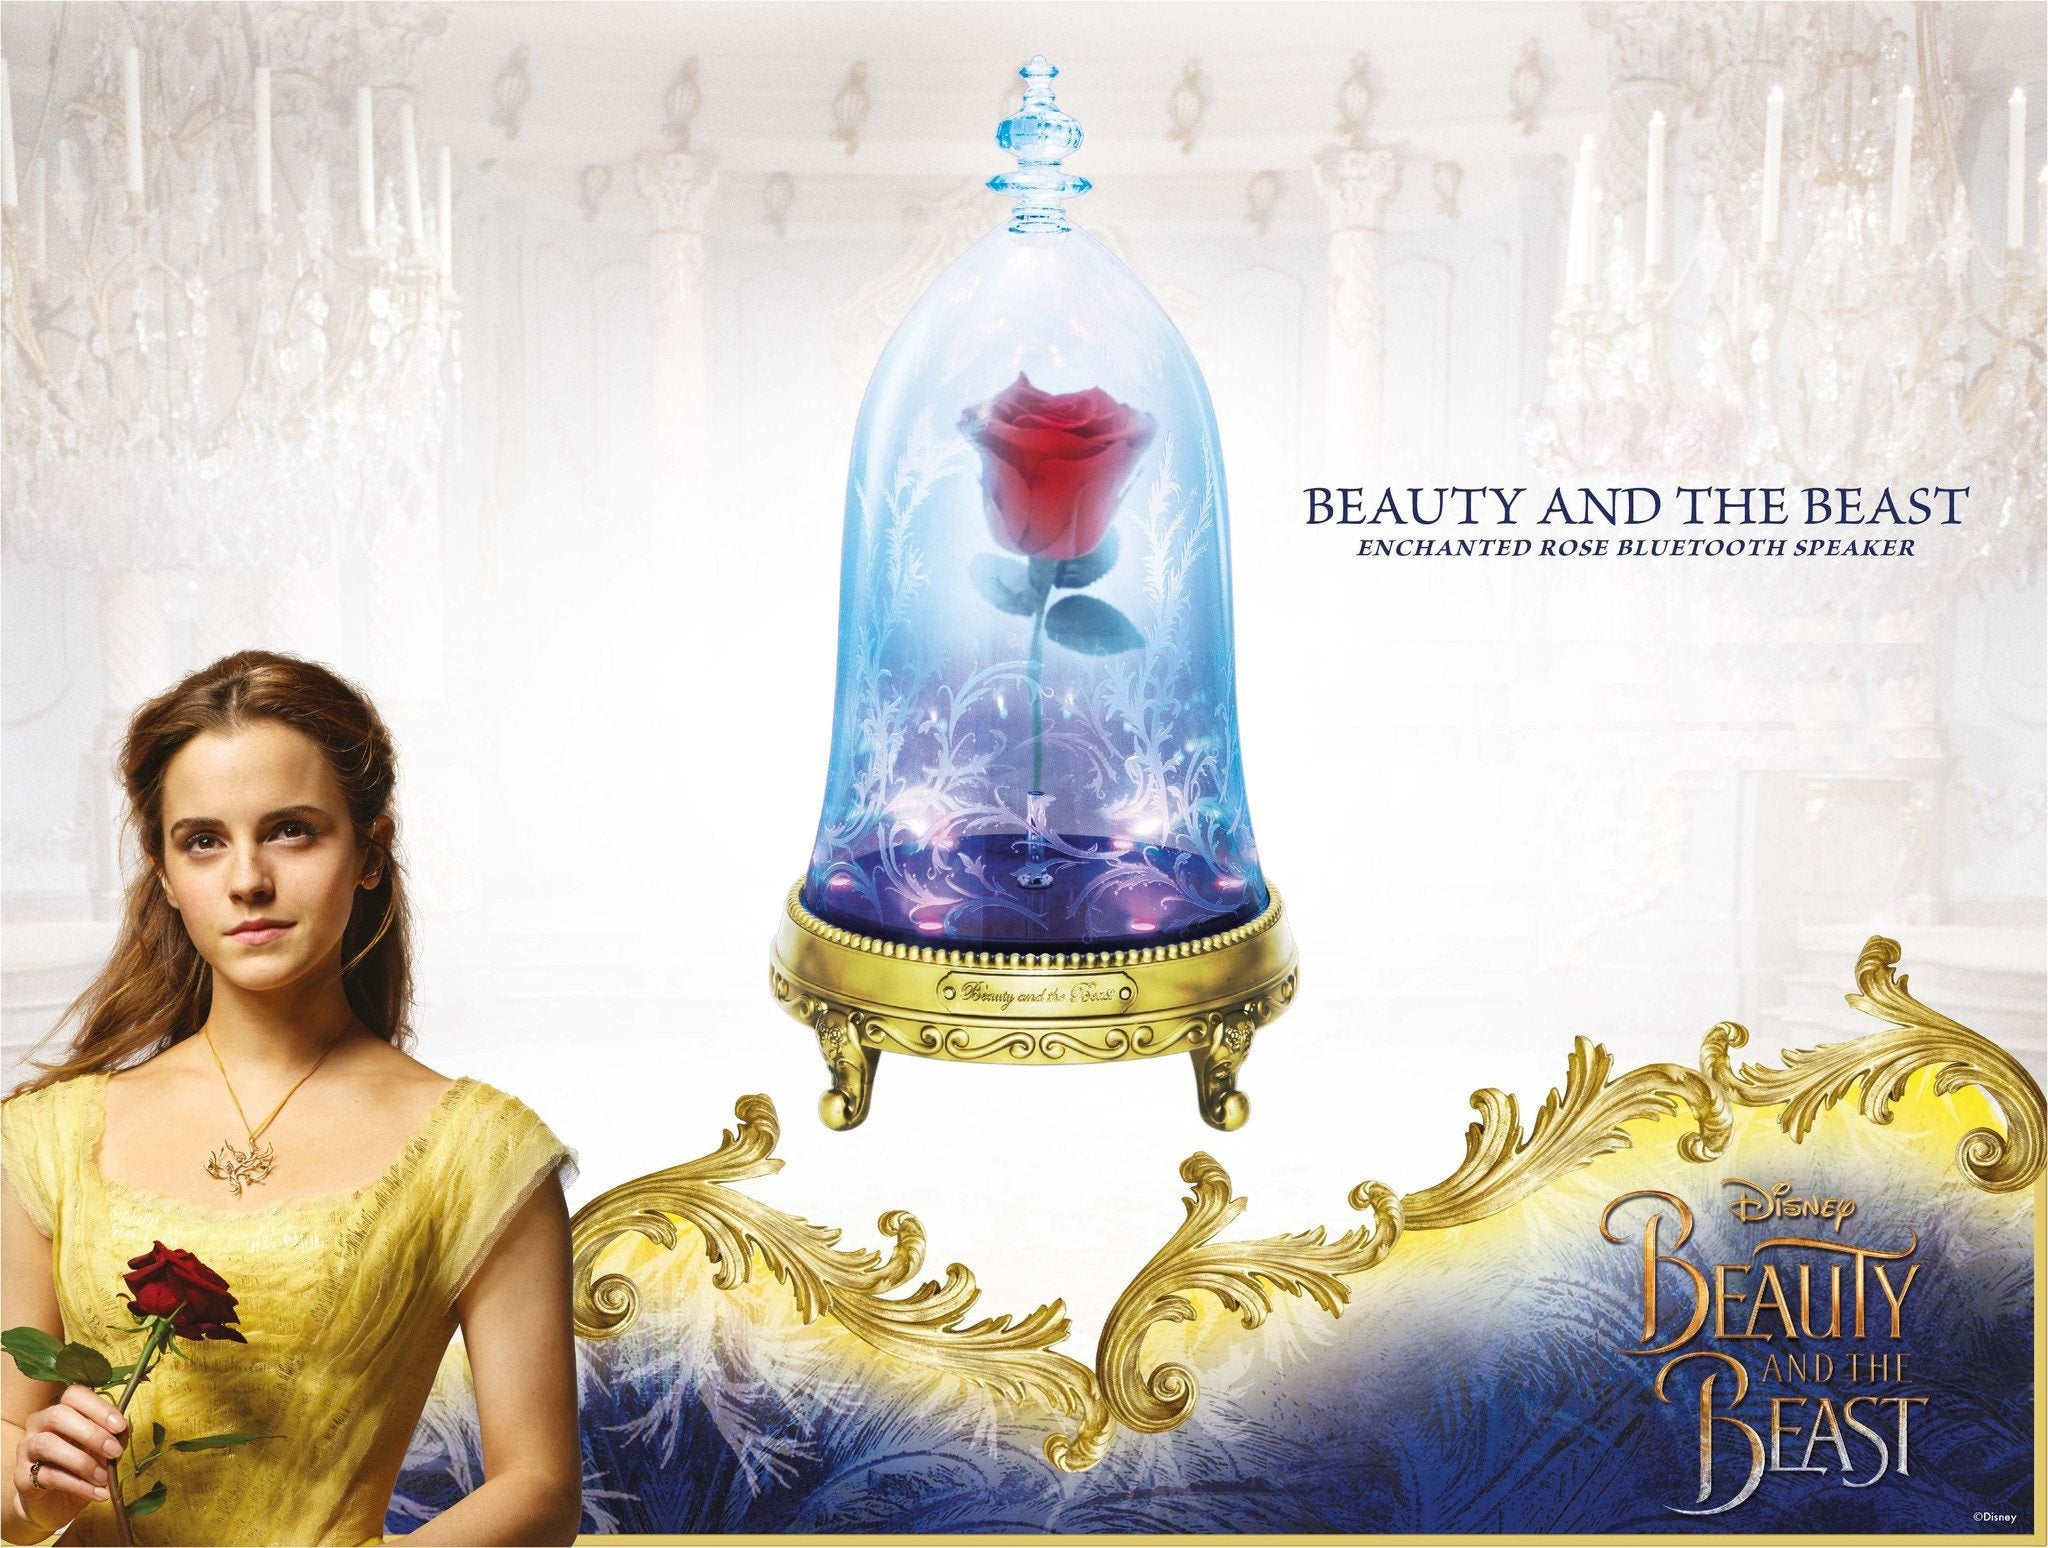 Beauty and The Beast - Enchanted Rose Speaker - HERO AUDIO